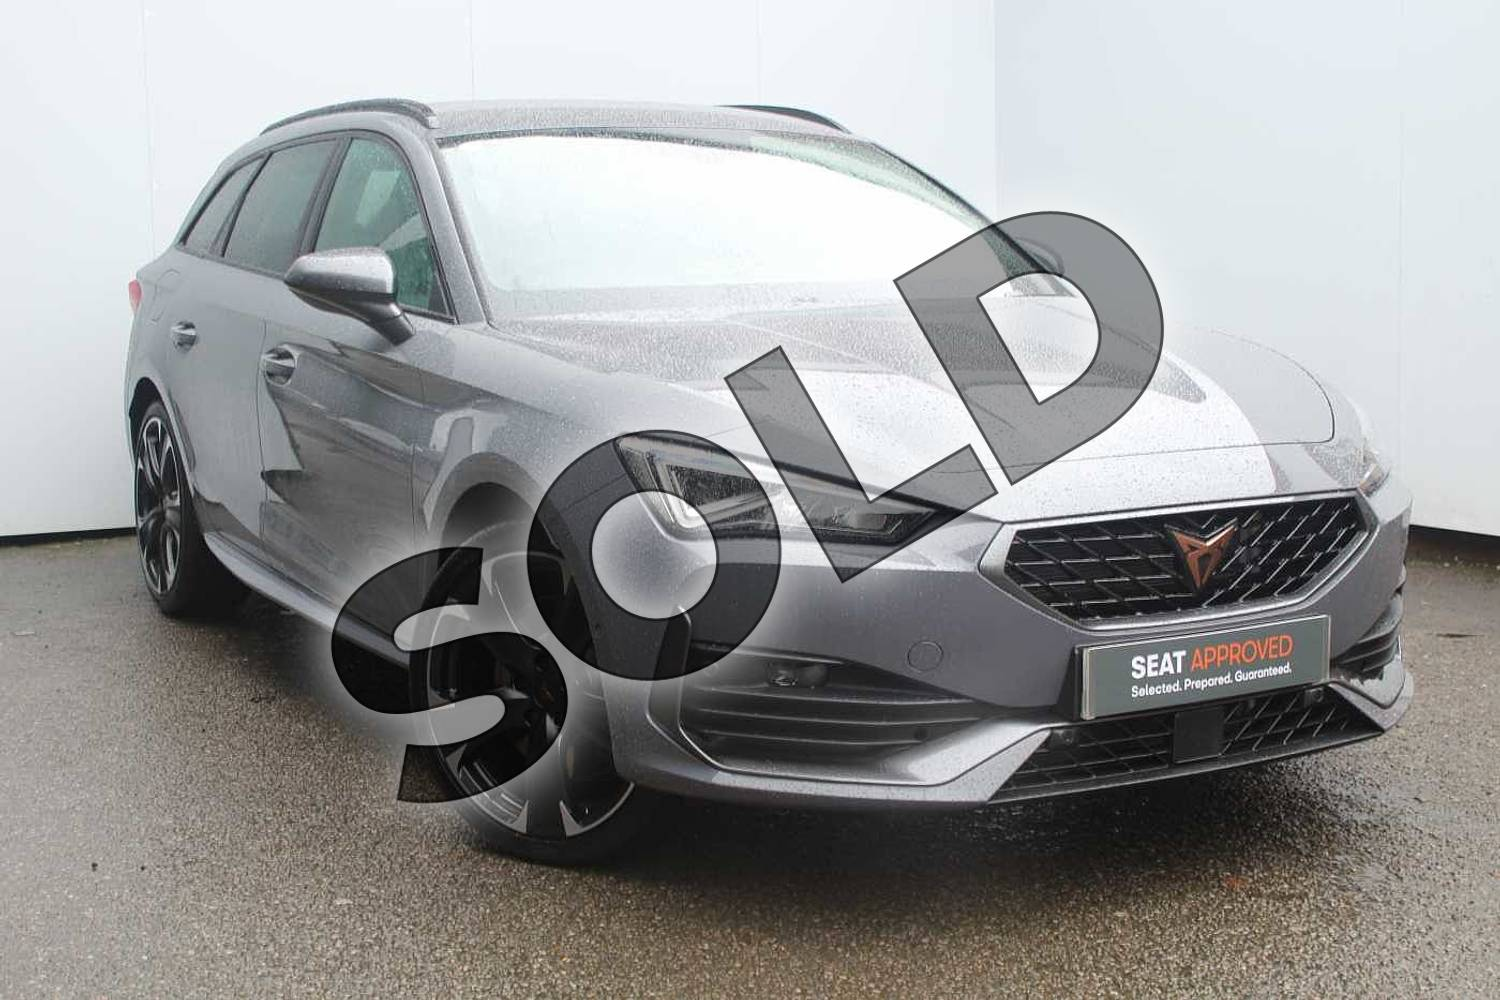 2020 SEAT Leon CUPRA 1.4 eHybrid First Edition 5dr DSG in Grey at Listers SEAT Worcester